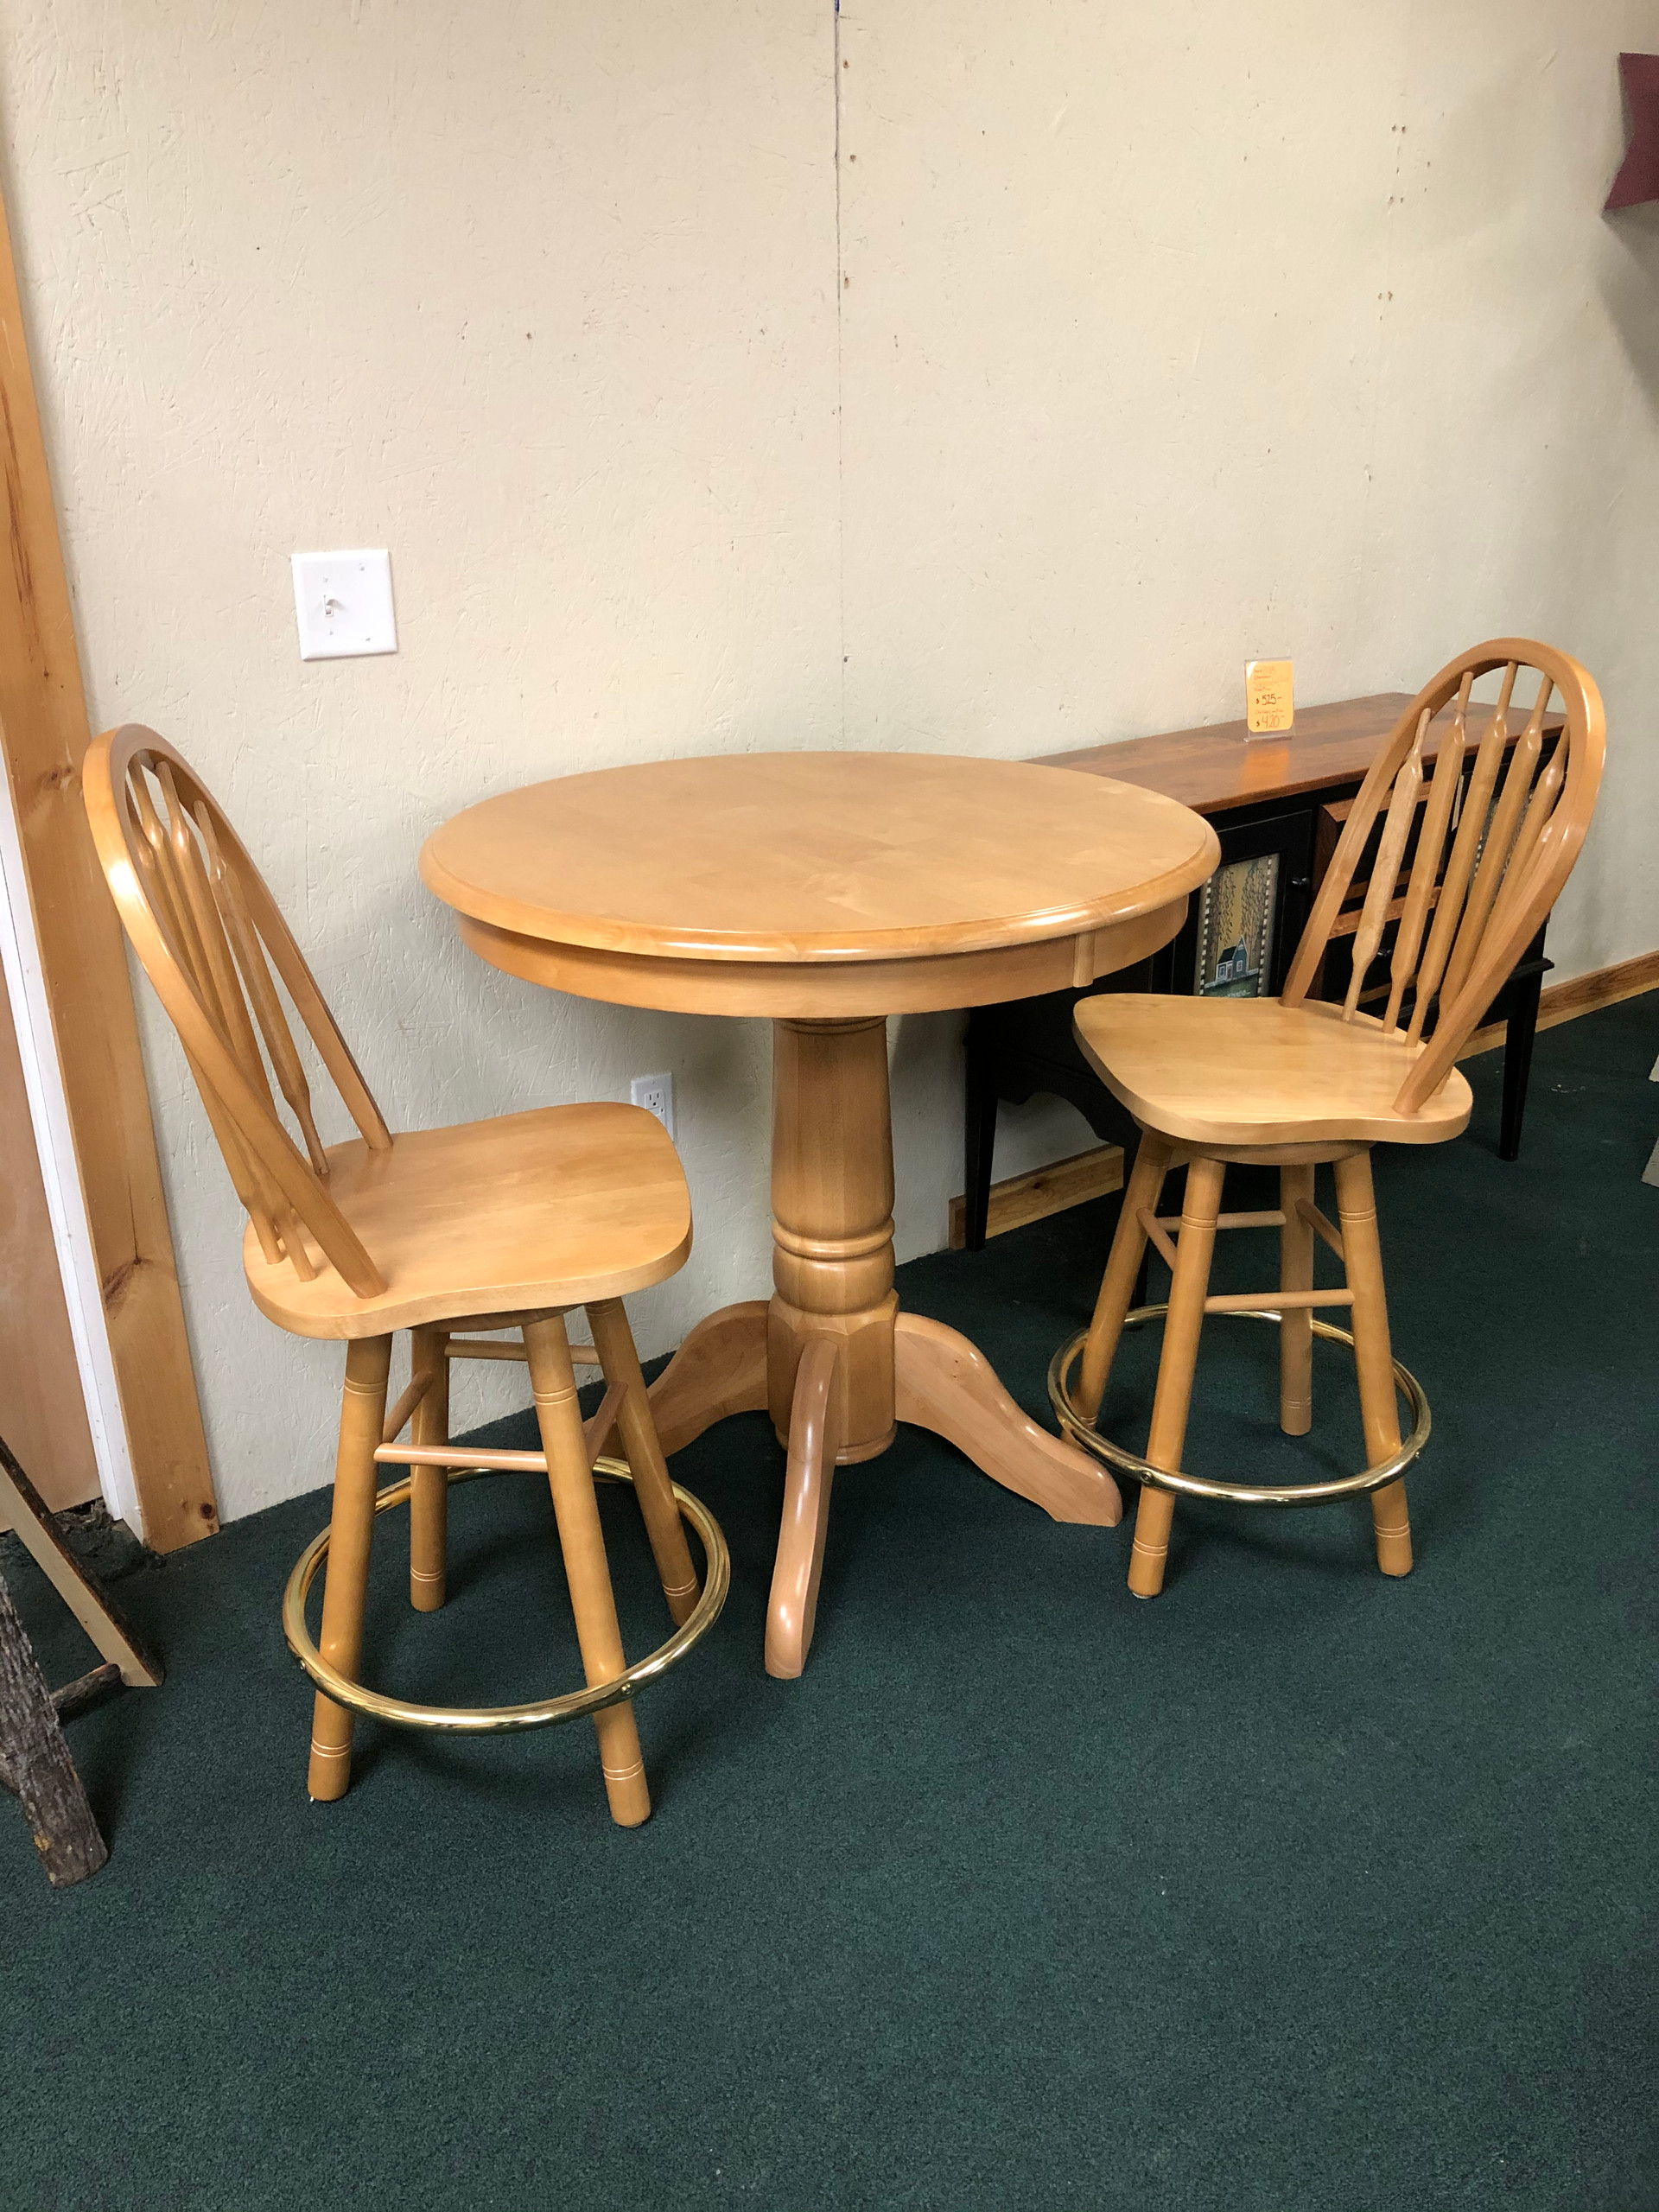 Pub table w/ 2 Chairs